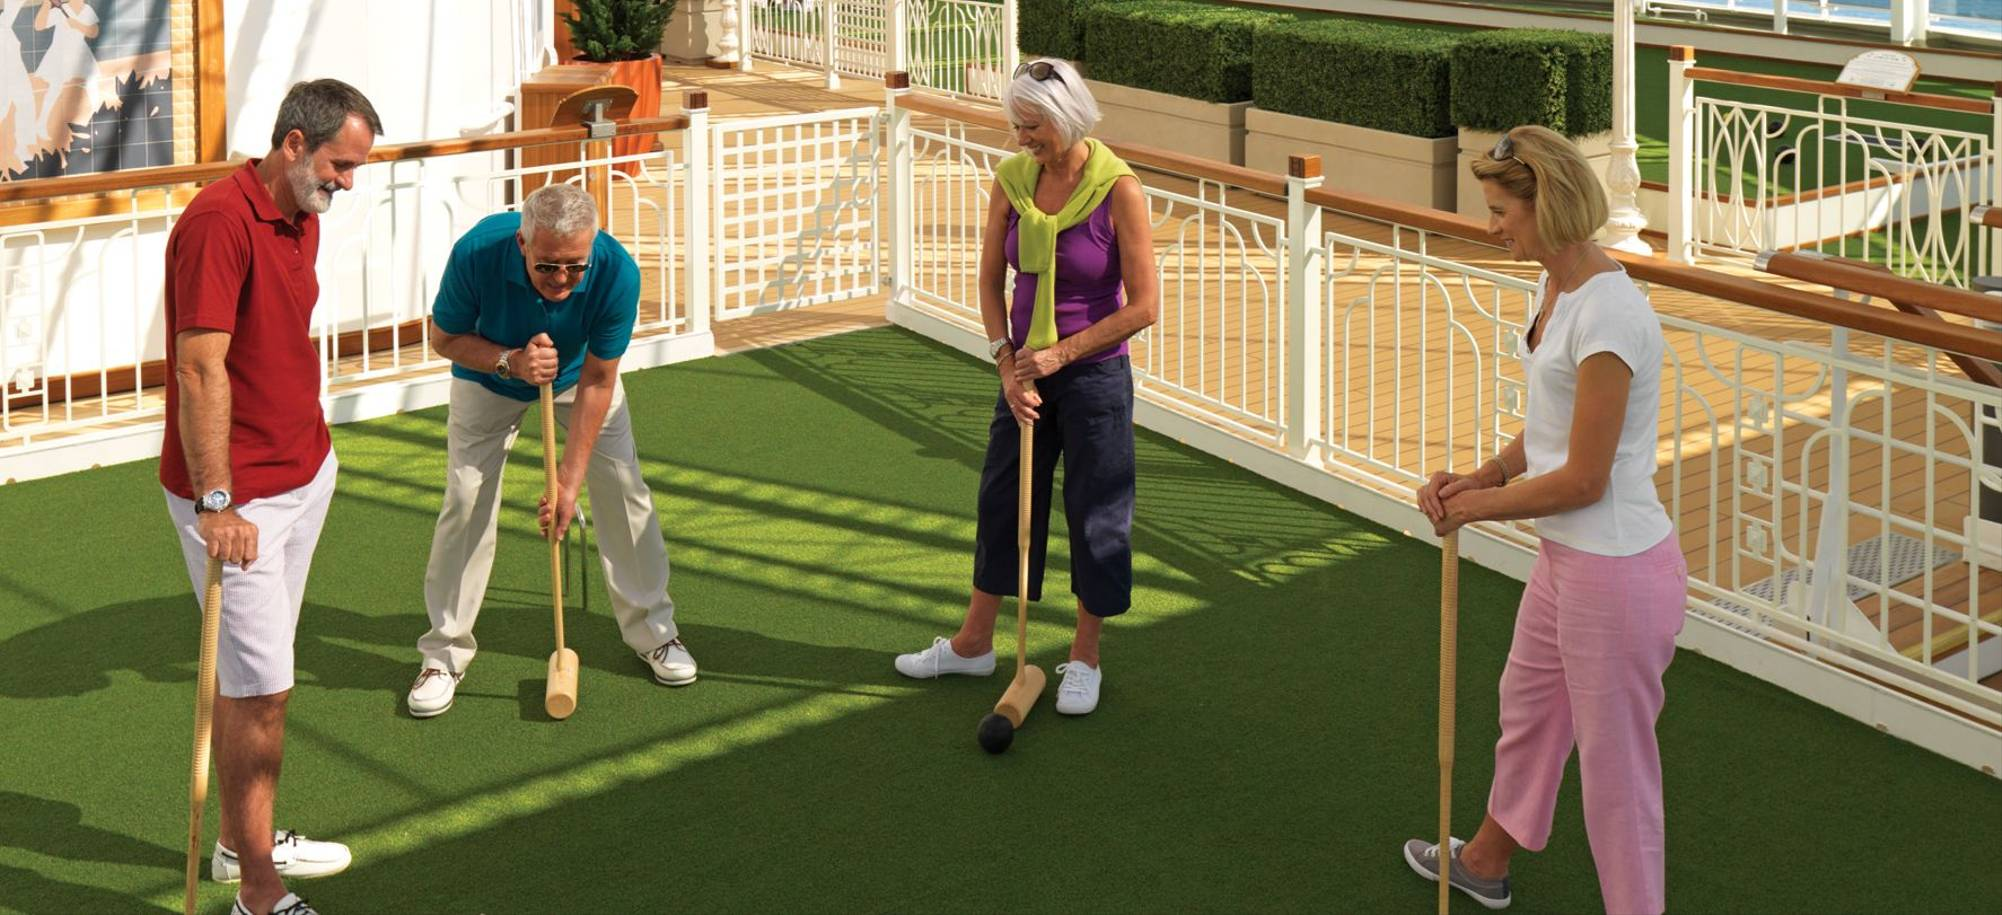 At Sea   Croquet On The Games Deck   Itinerary Desktop